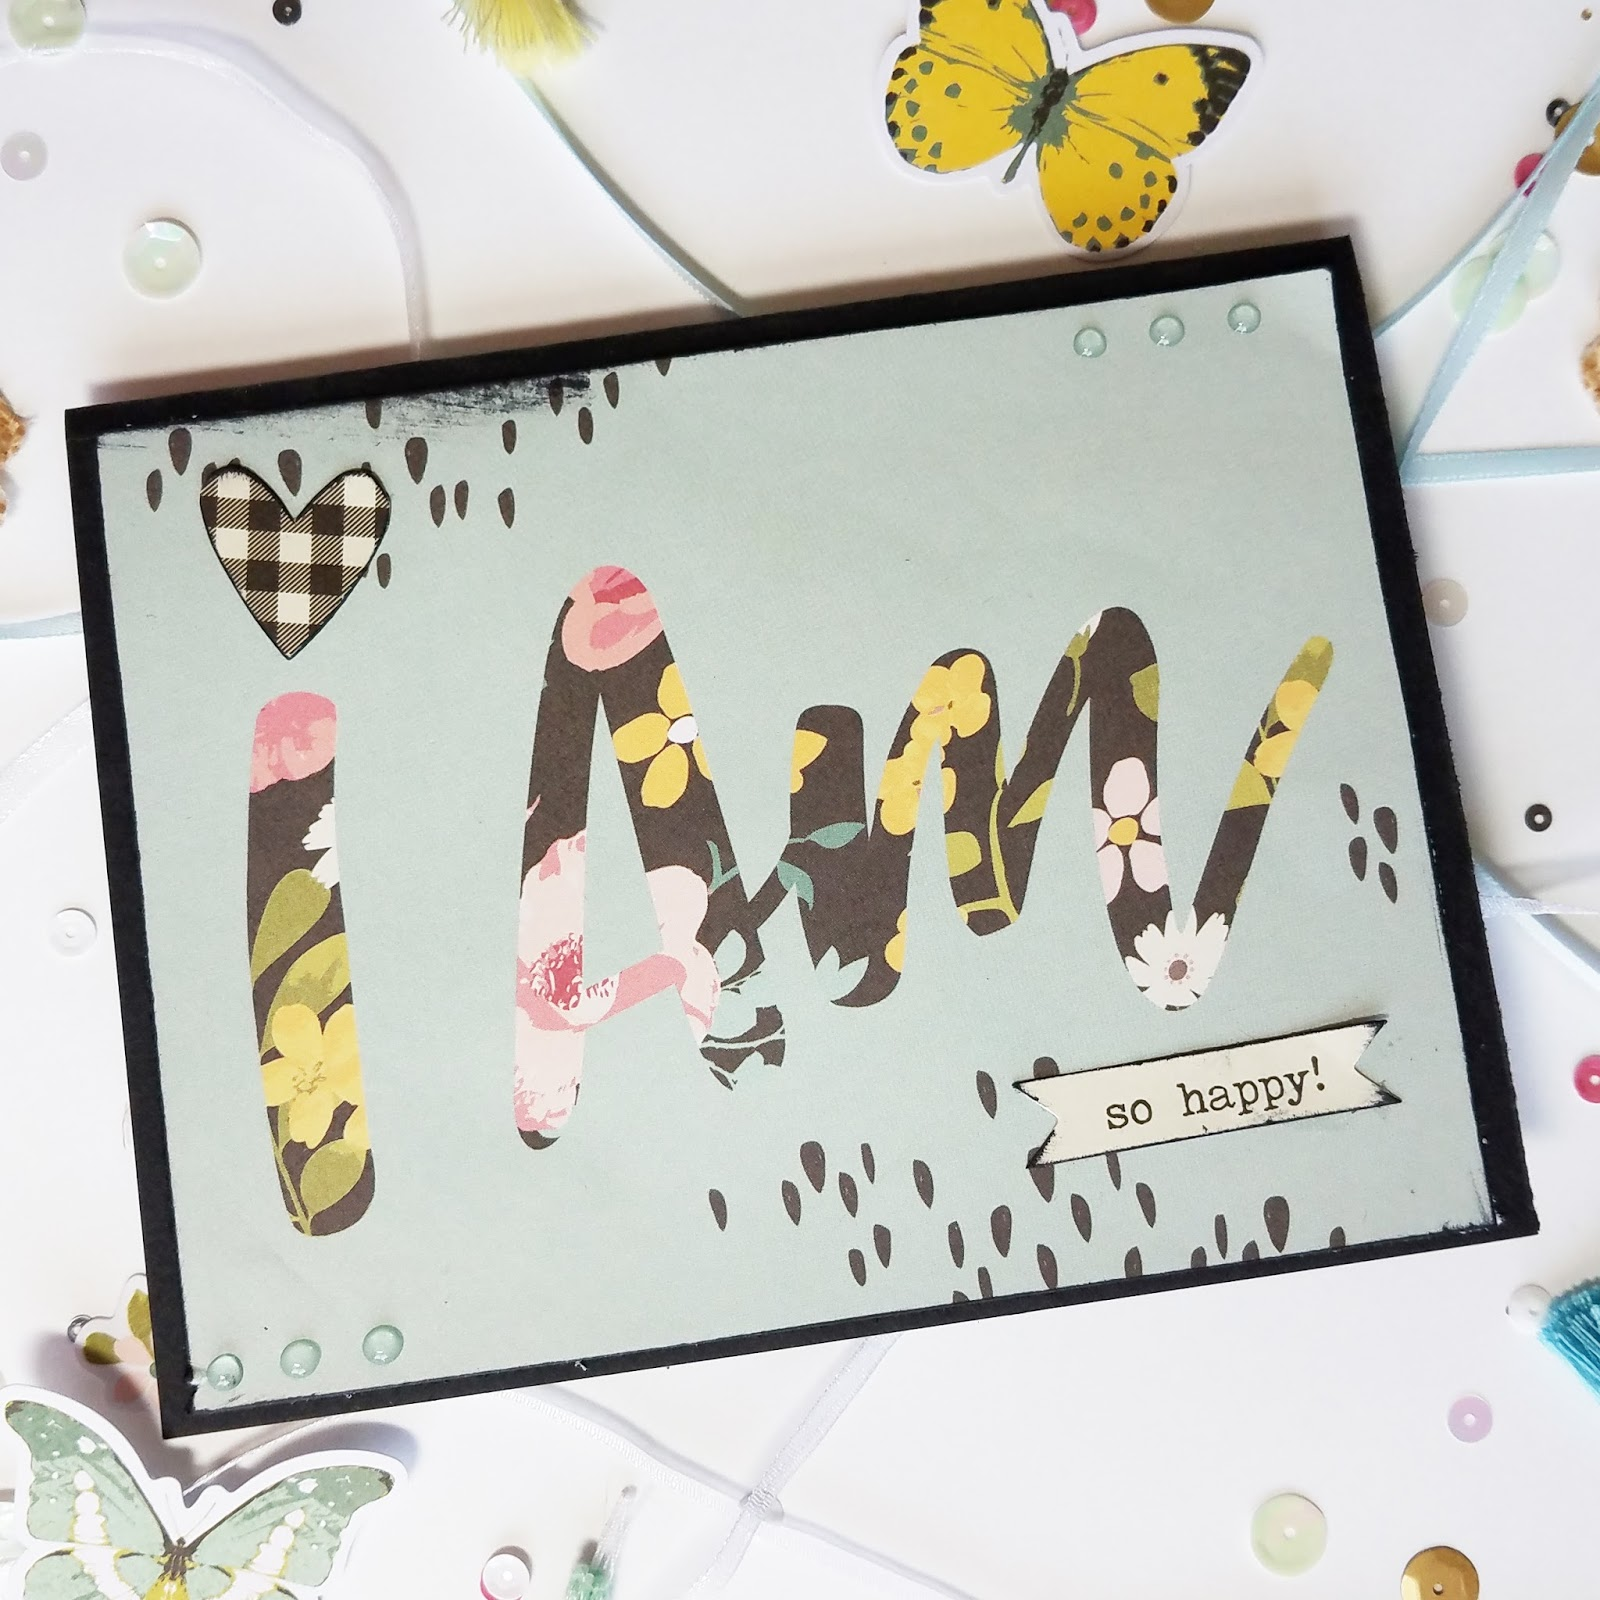 scraps of reflection: 10 Handmade Cards that Inspire